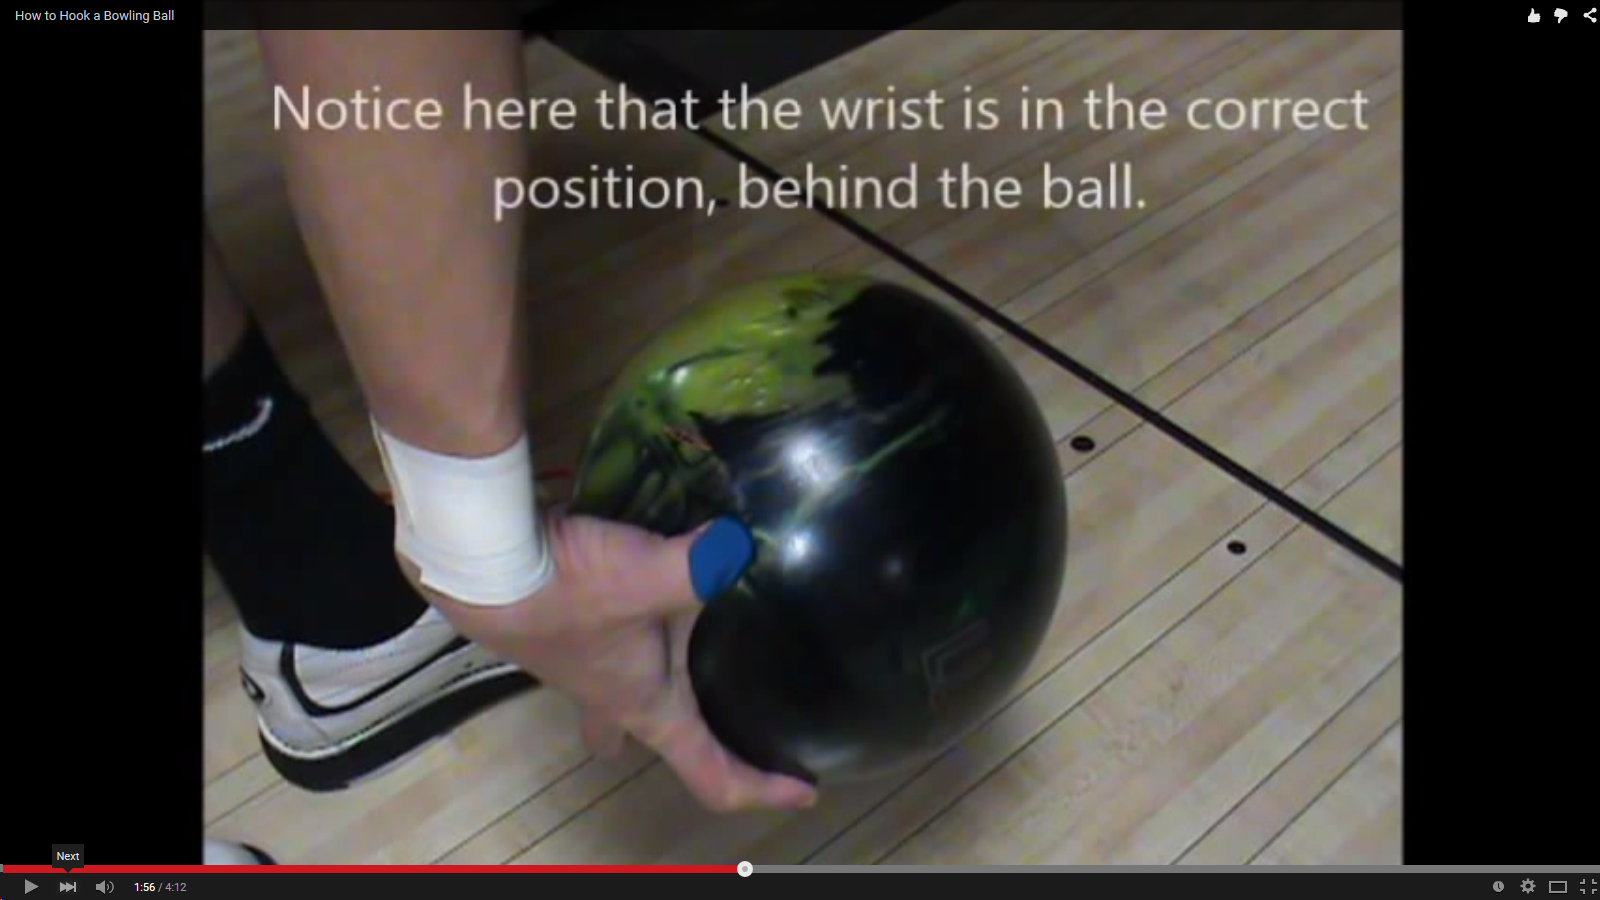 ... The Release in Hook Ball Bowling and proper position for good thumb  release.